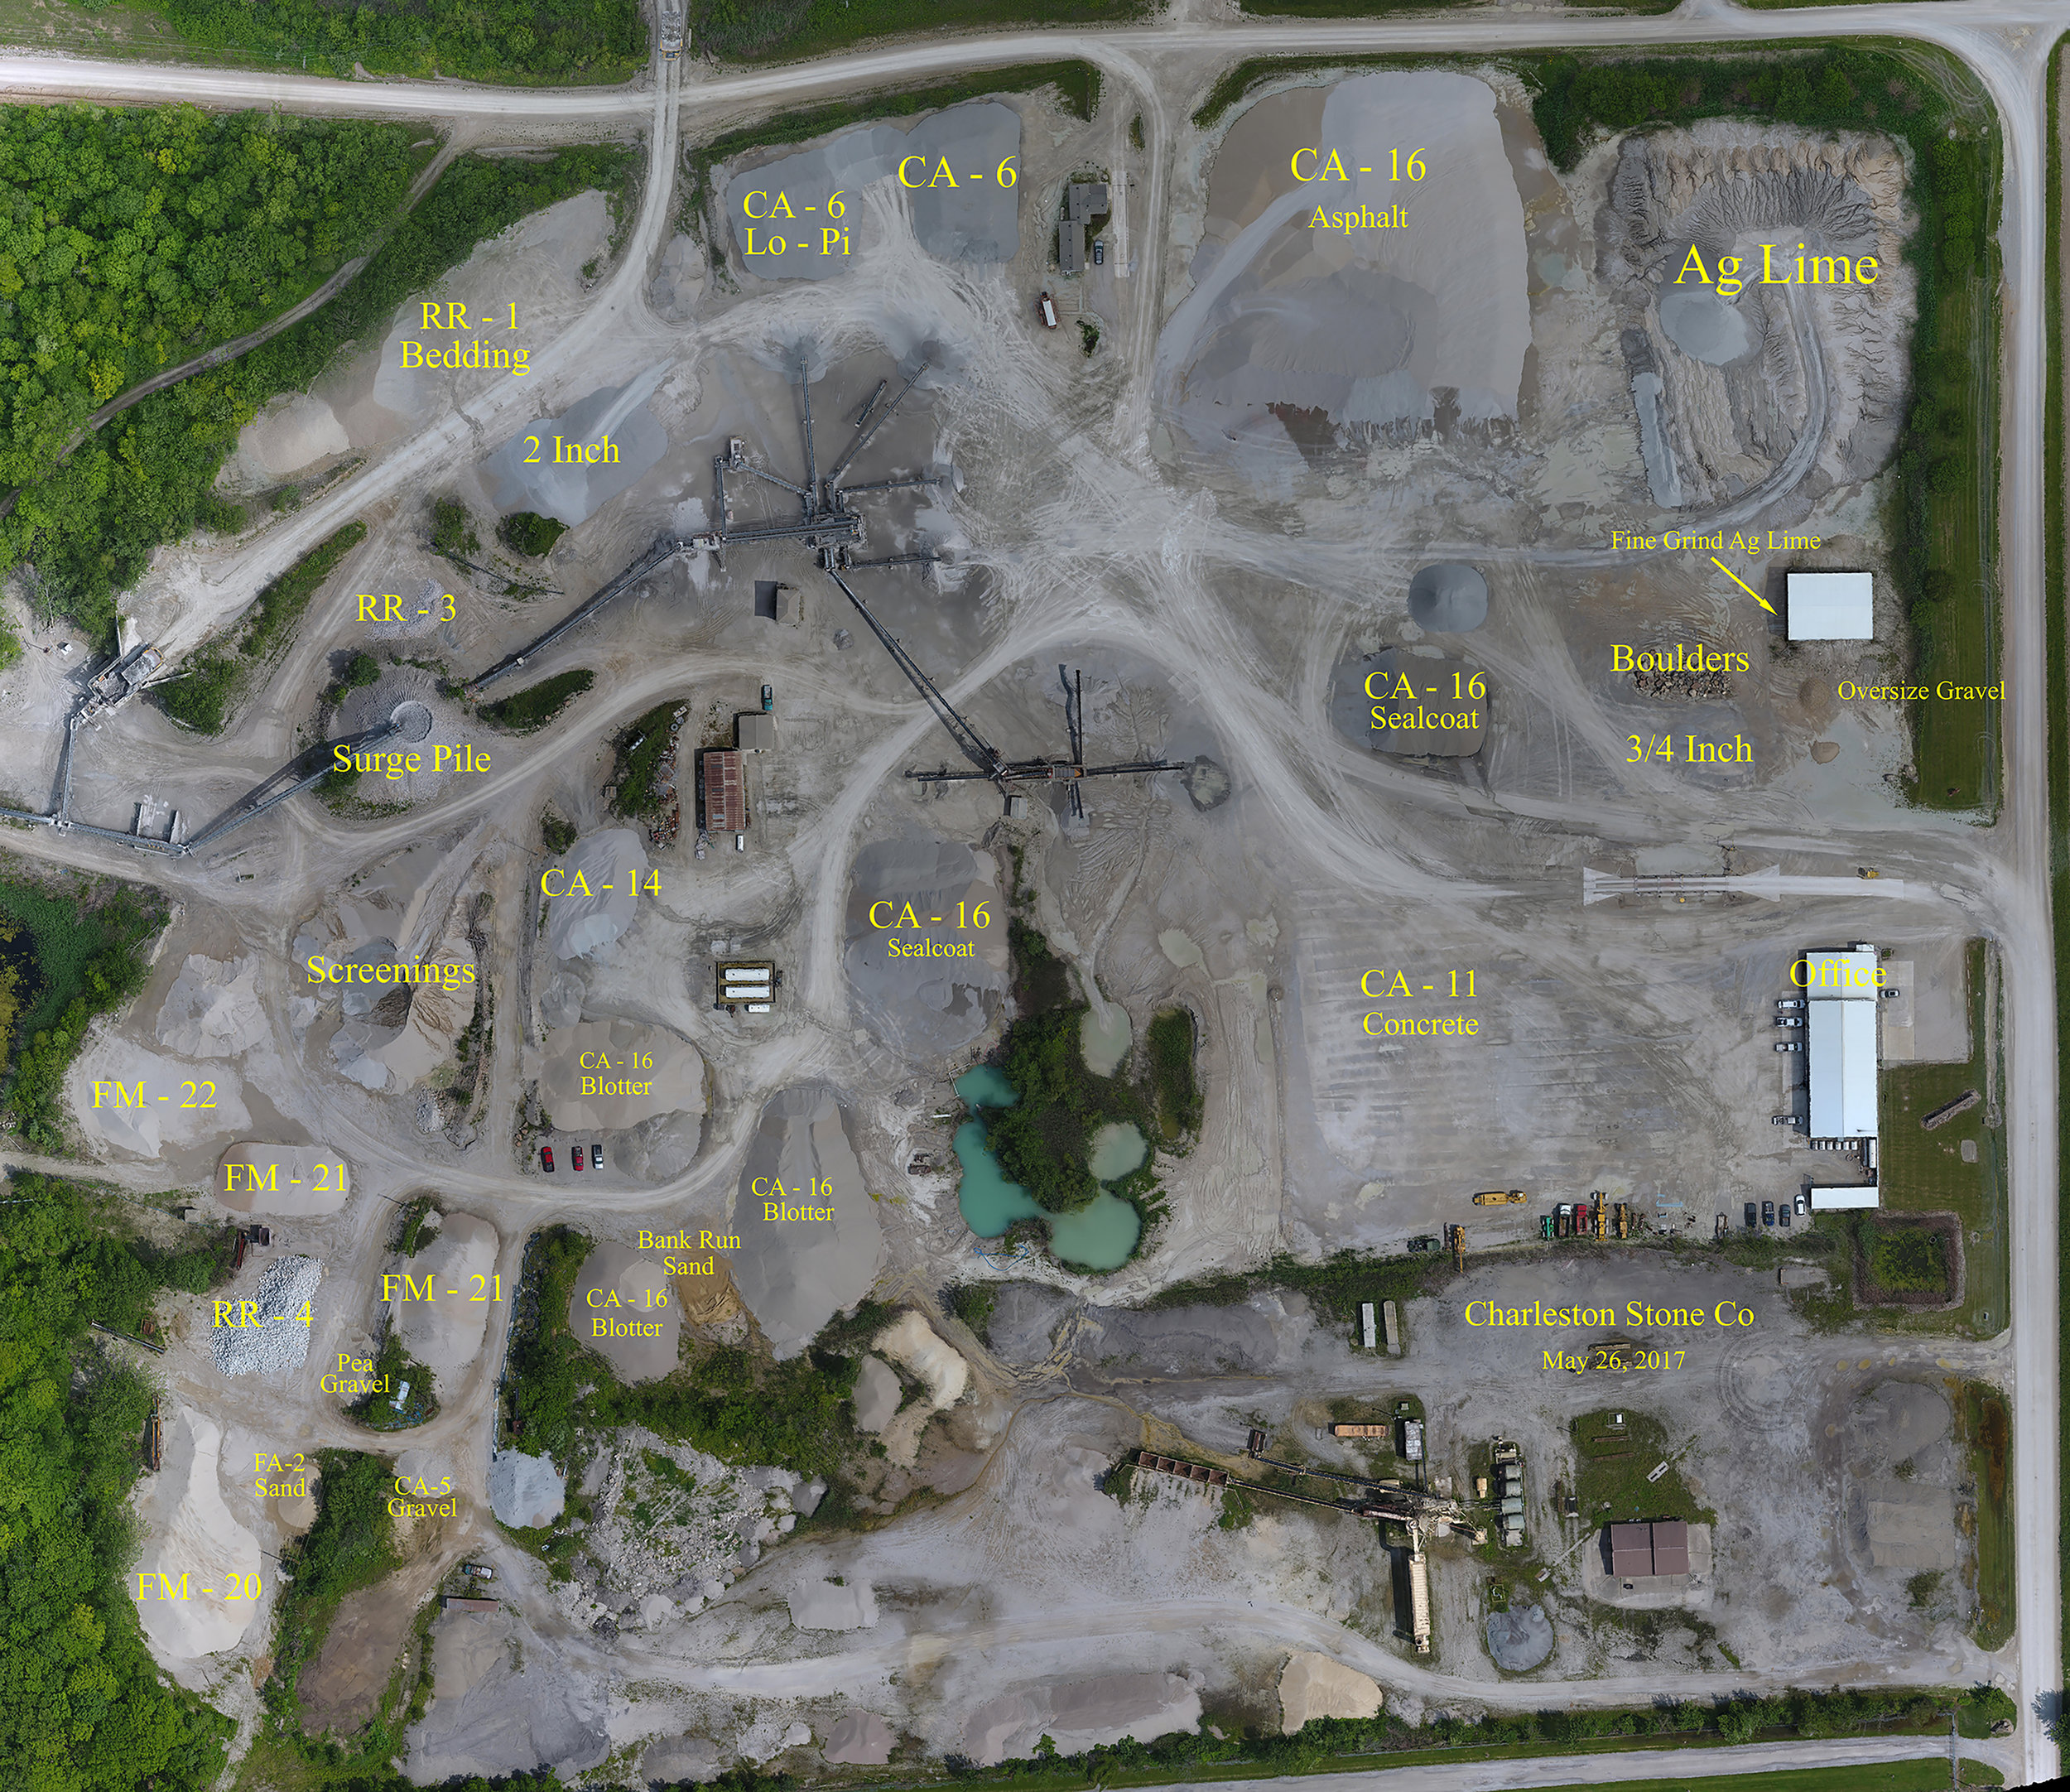 Overview map of plant and stockpile area with stock locations.